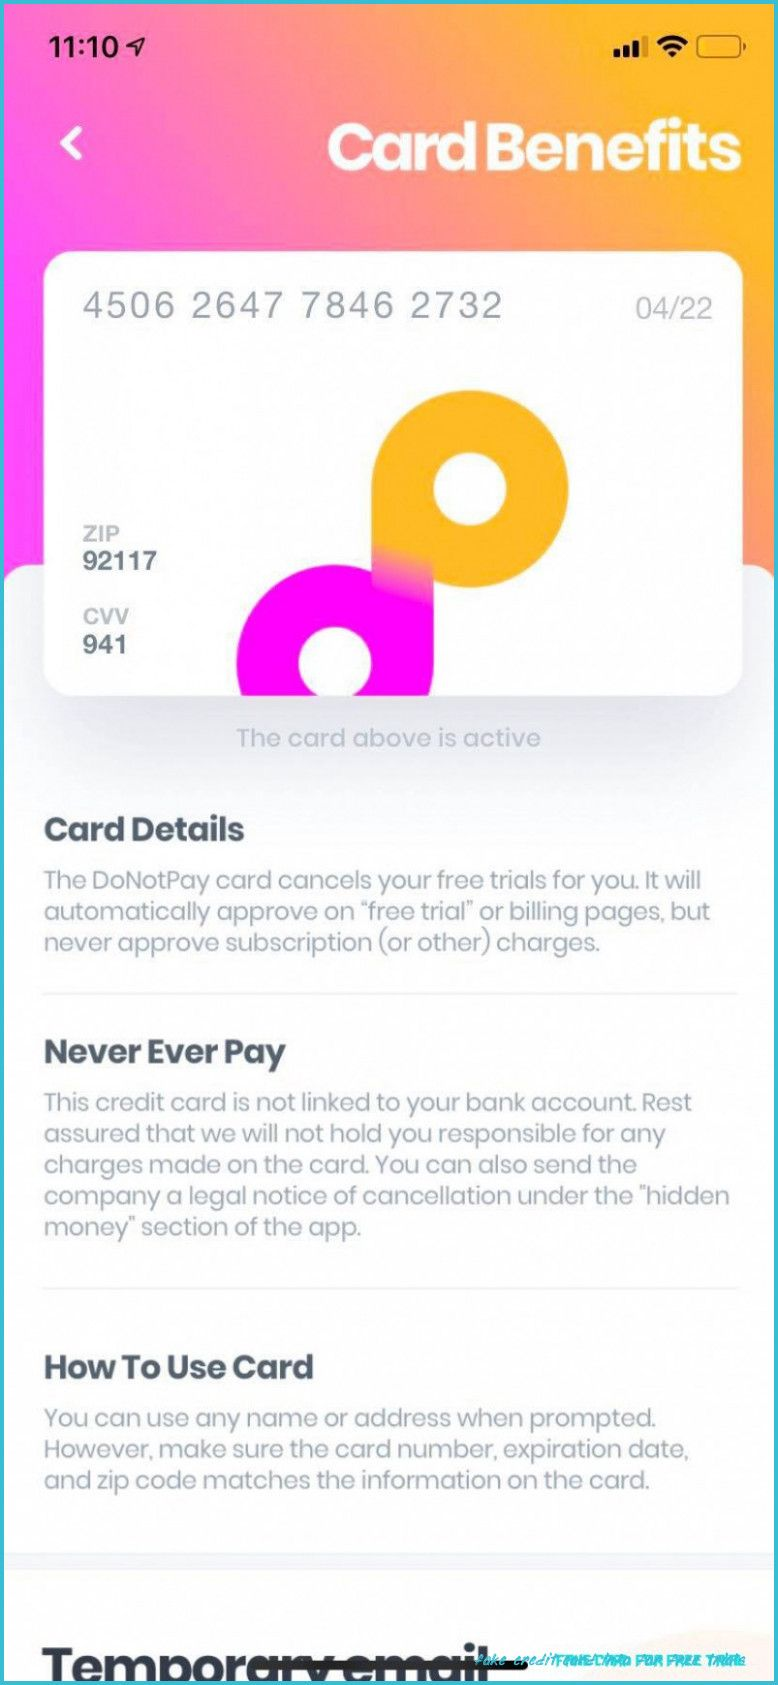 Why Is Fake Credit Card Info For Free Trials Considered